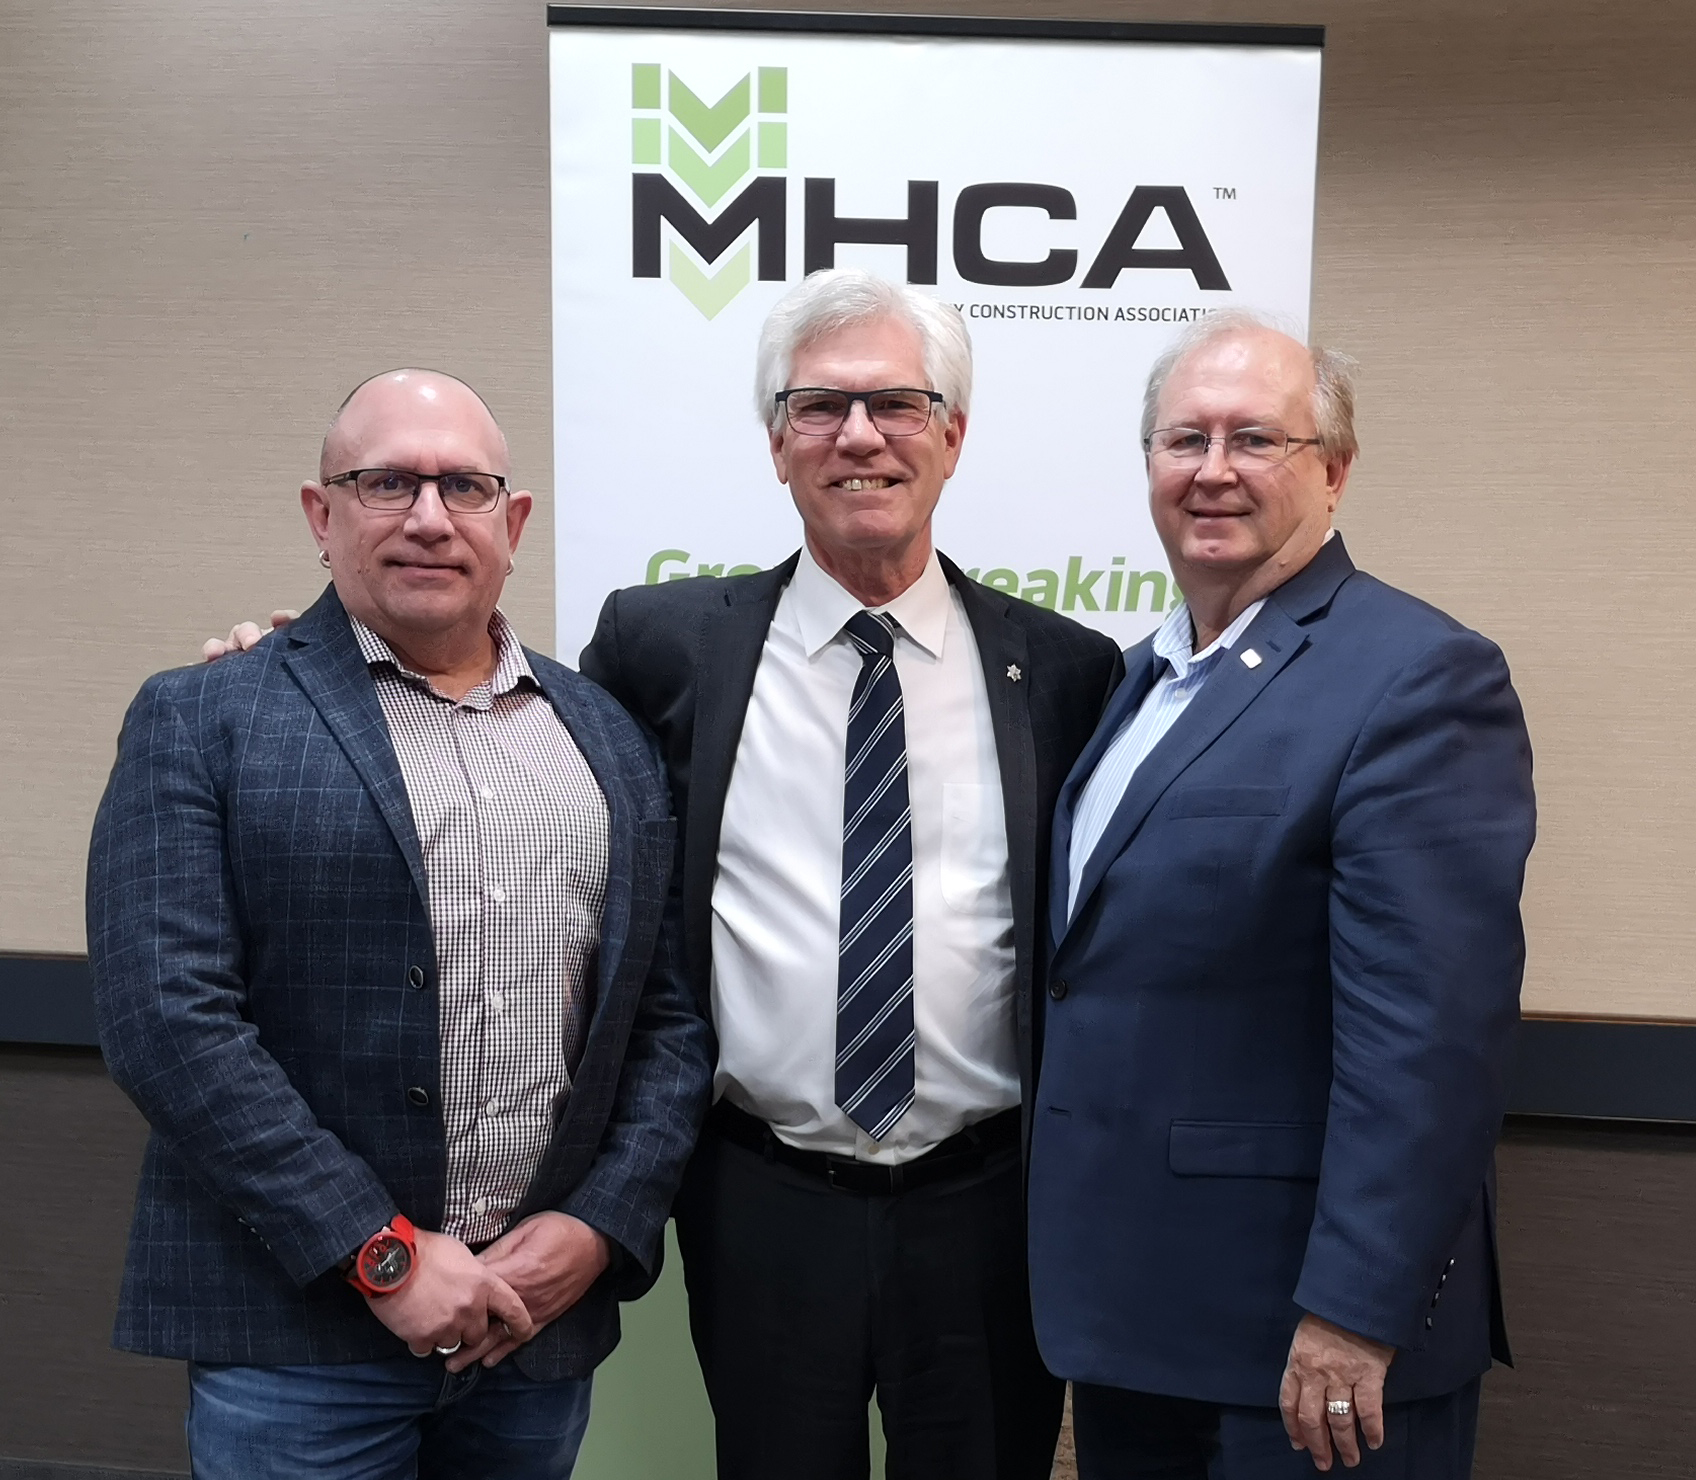 Breakfast with Leaders - Jack Meseyton, Jim Carr and Chris Lorenc